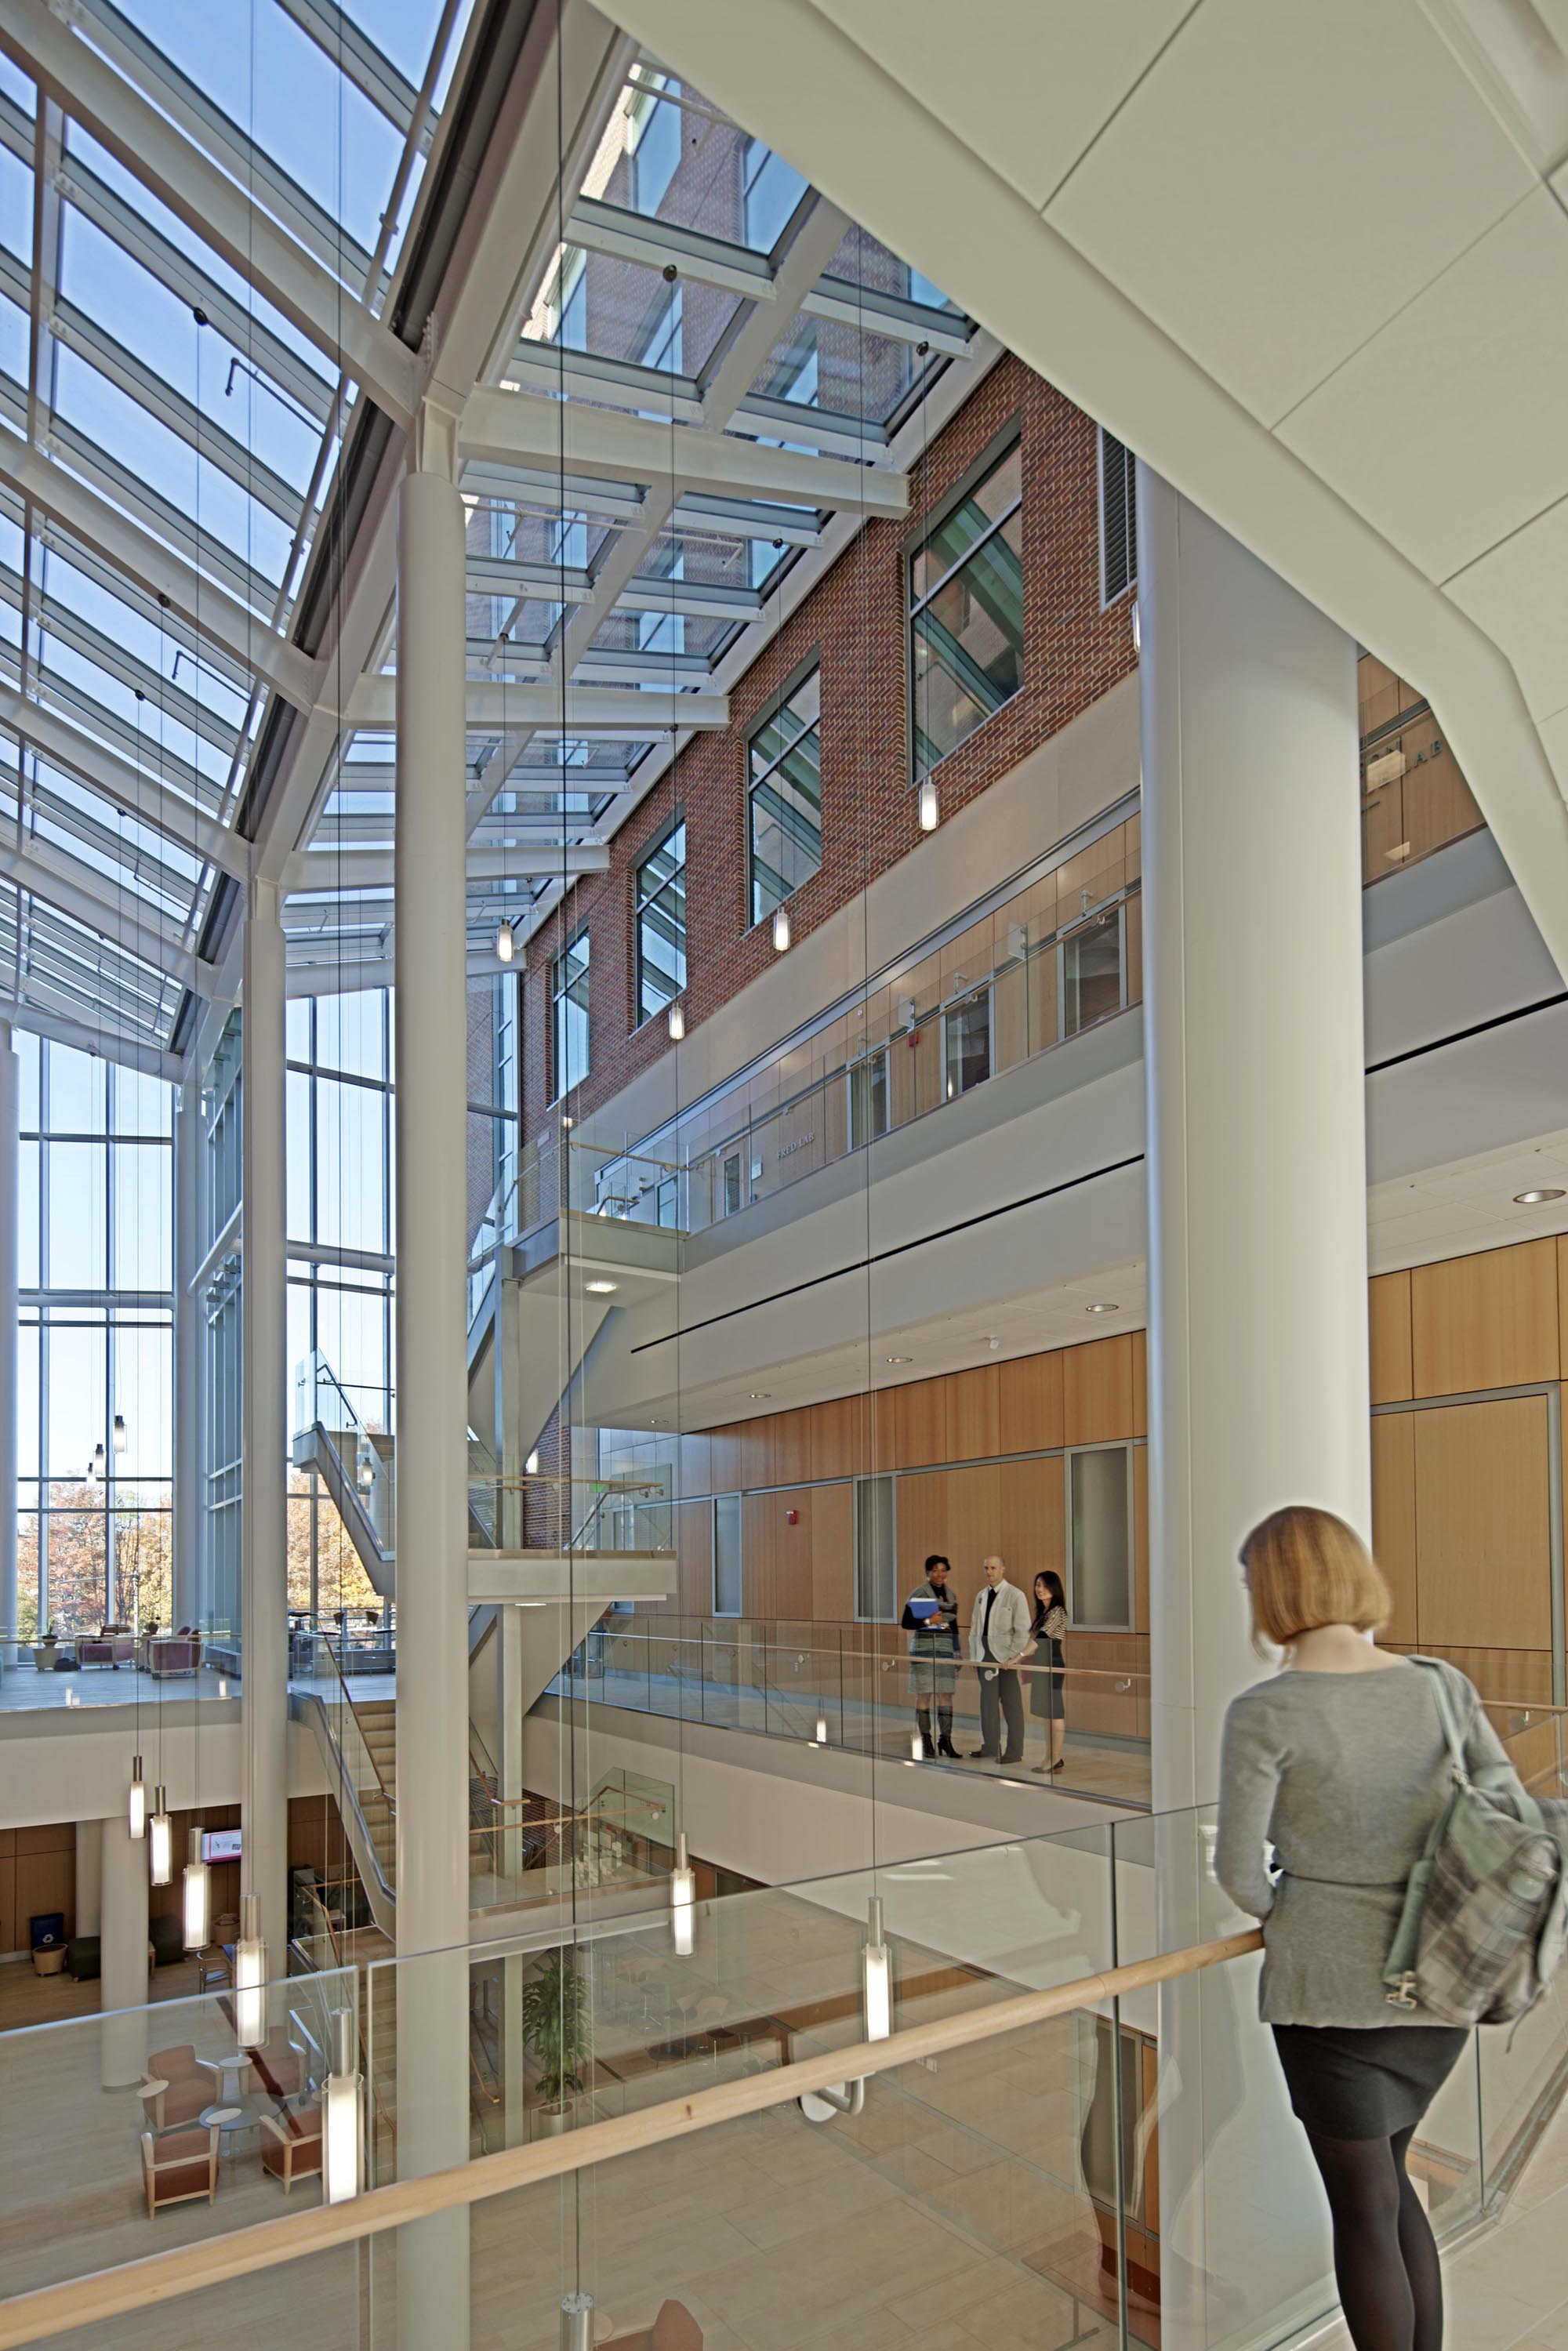 School Of Pharmacy University Of Maryland Baltimore Jmt Architecture